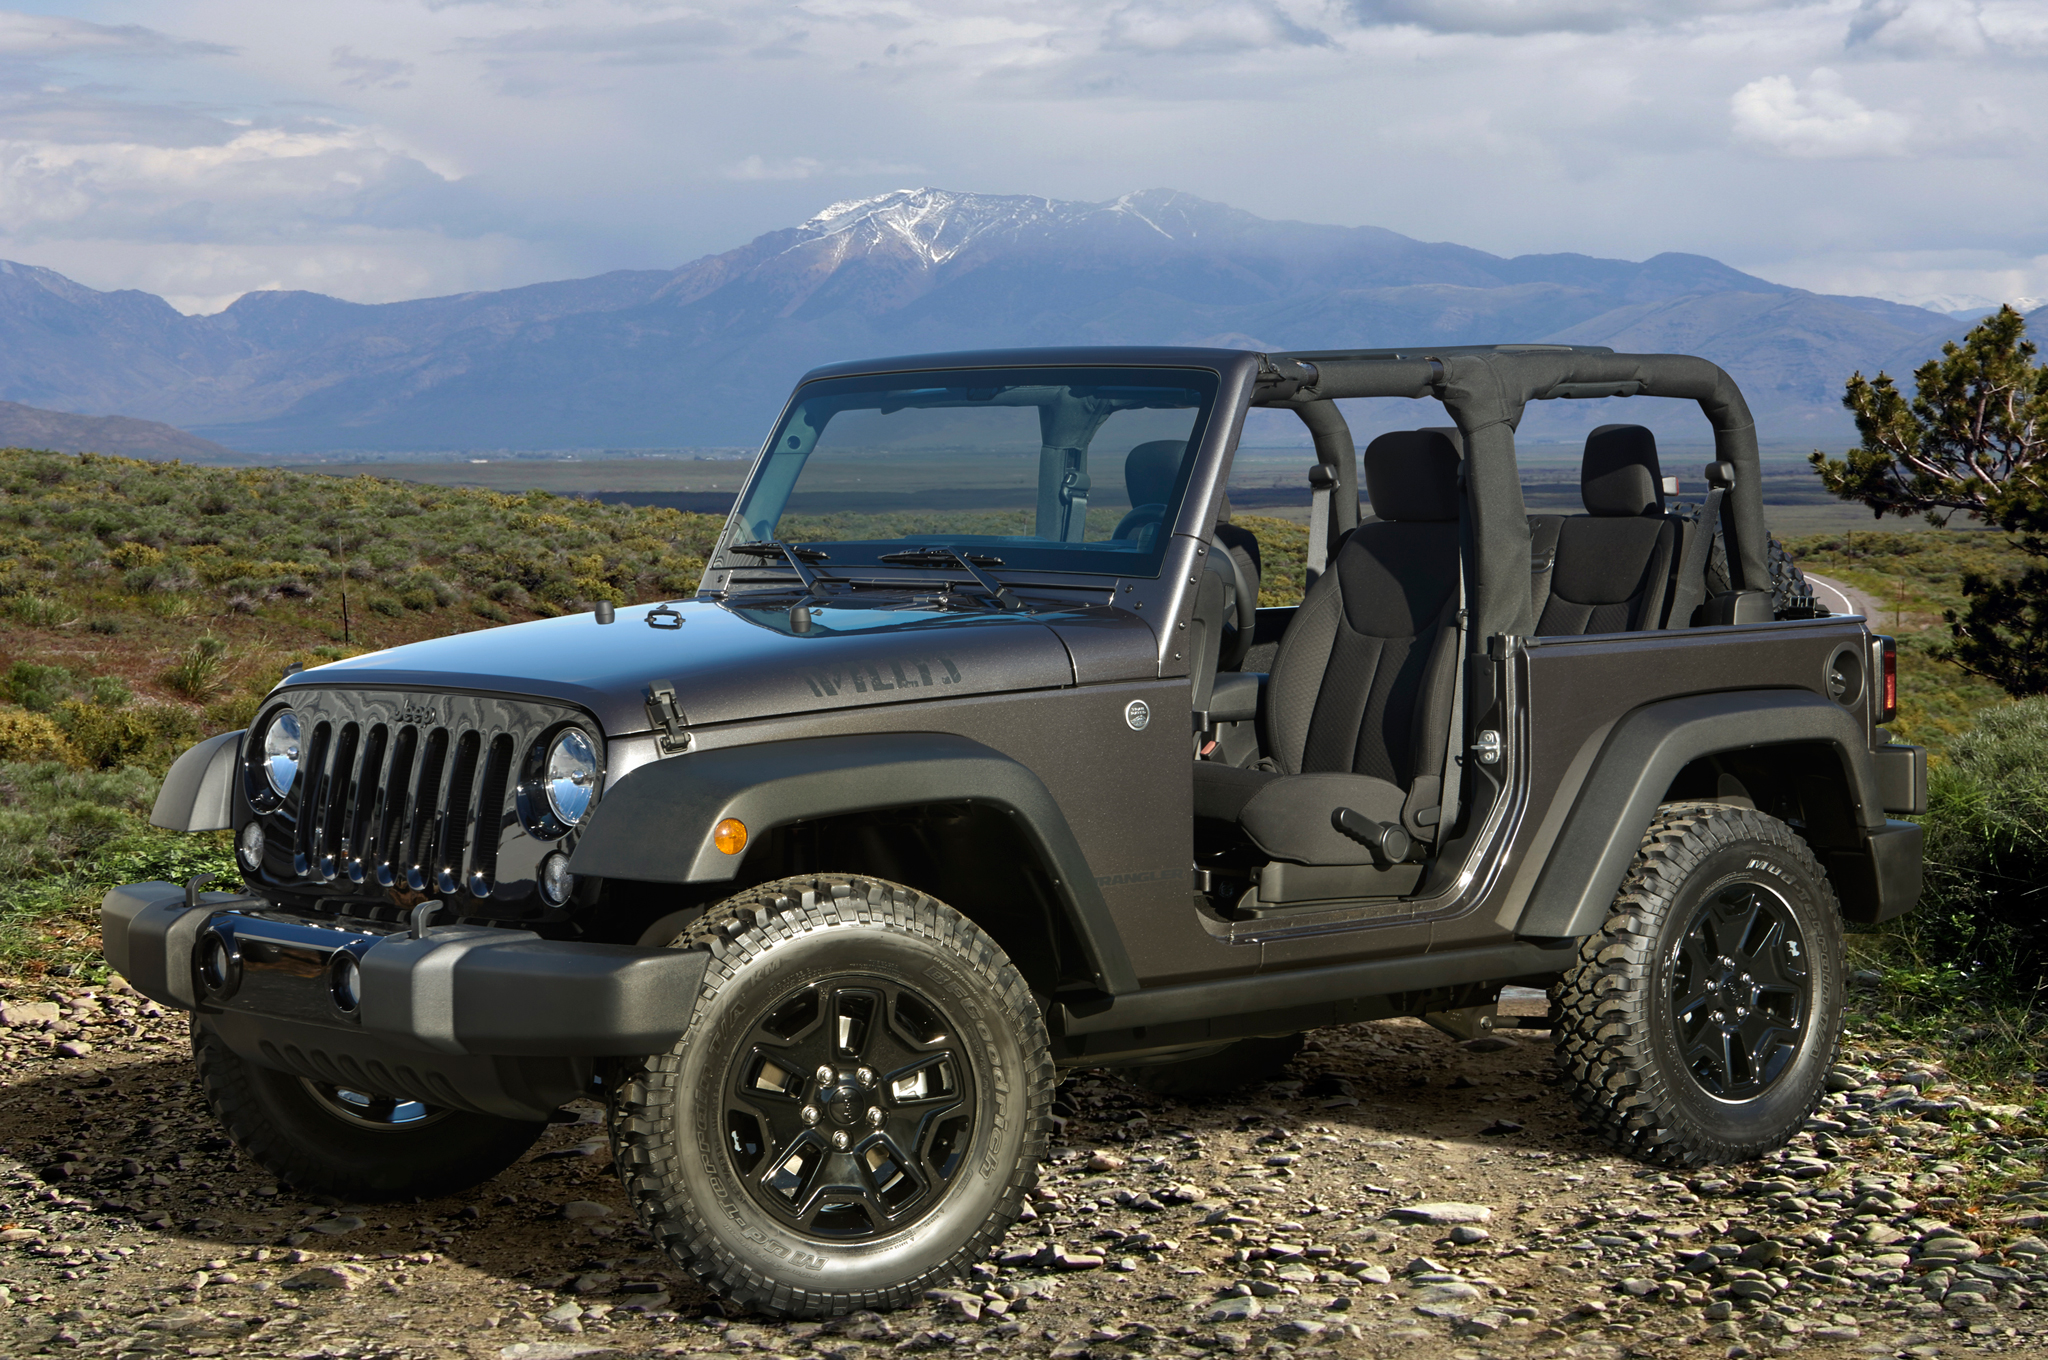 Next-Gen Wrangler to Lose Weight, Add Updated Transmissions, Engines